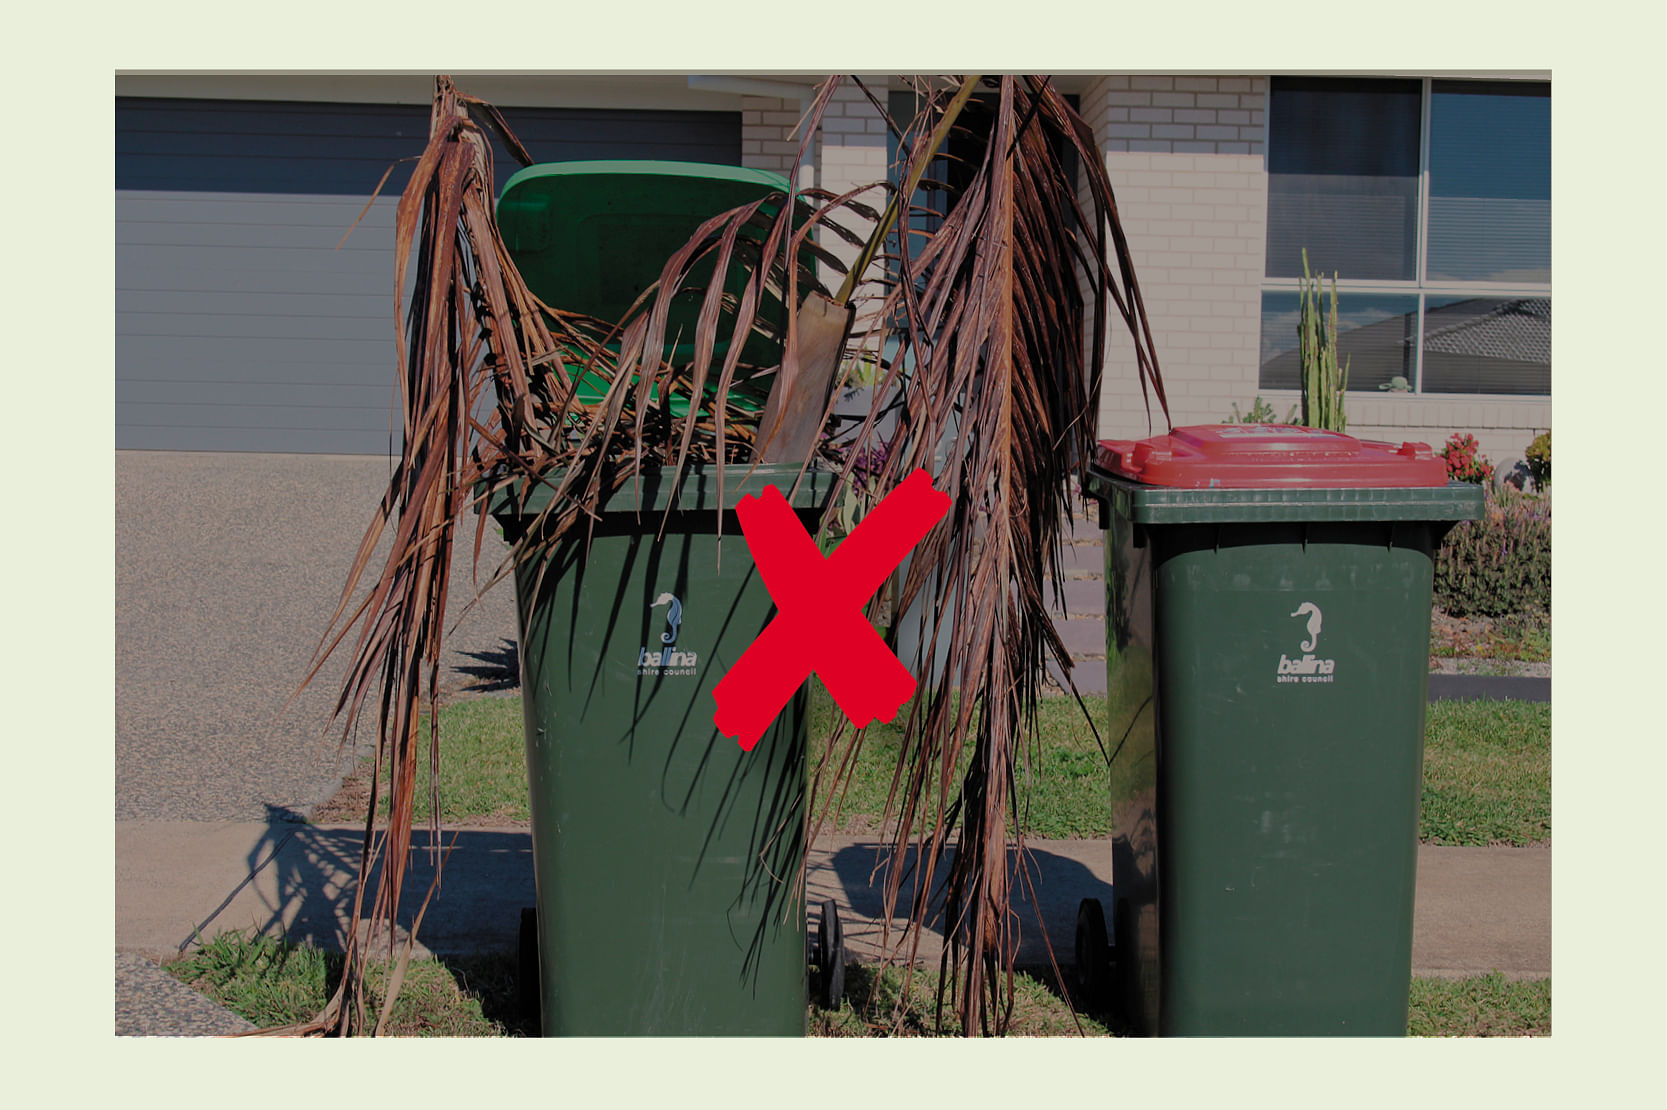 Bin overfilled with palm throngs